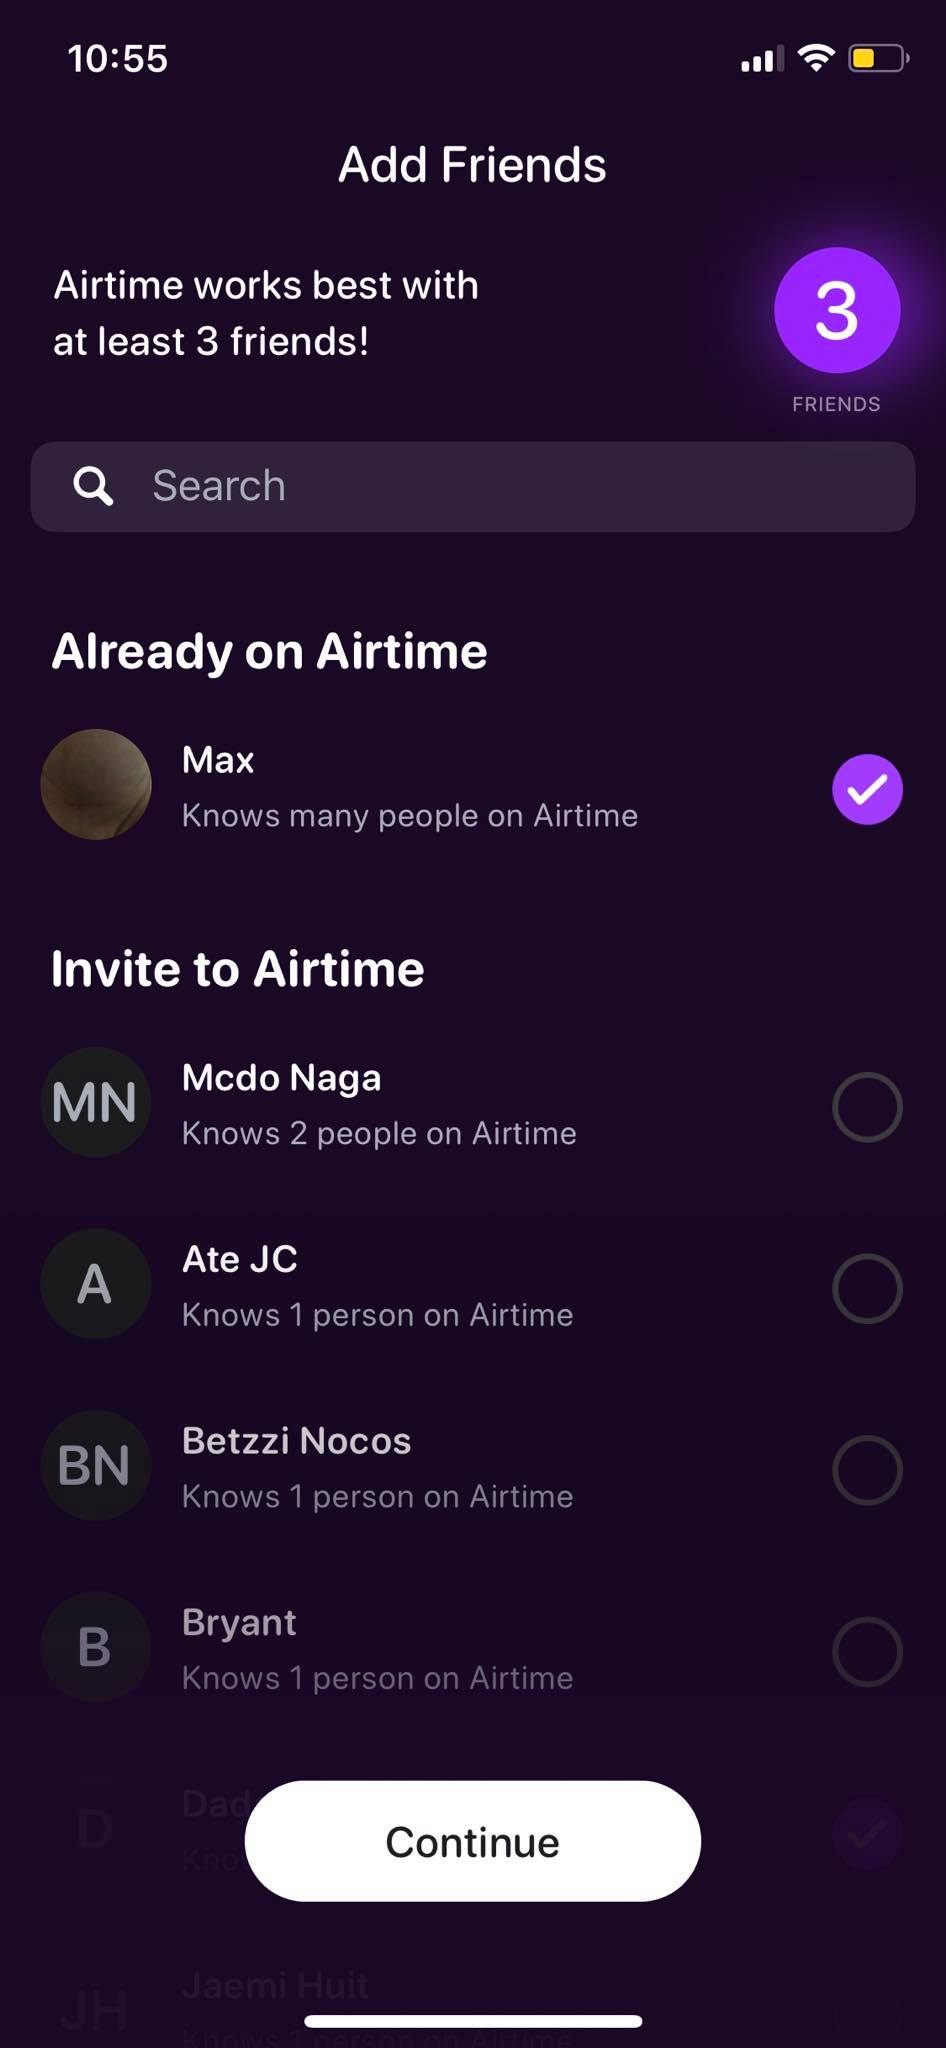 Add Friends on iOS by Airtime from UIGarage